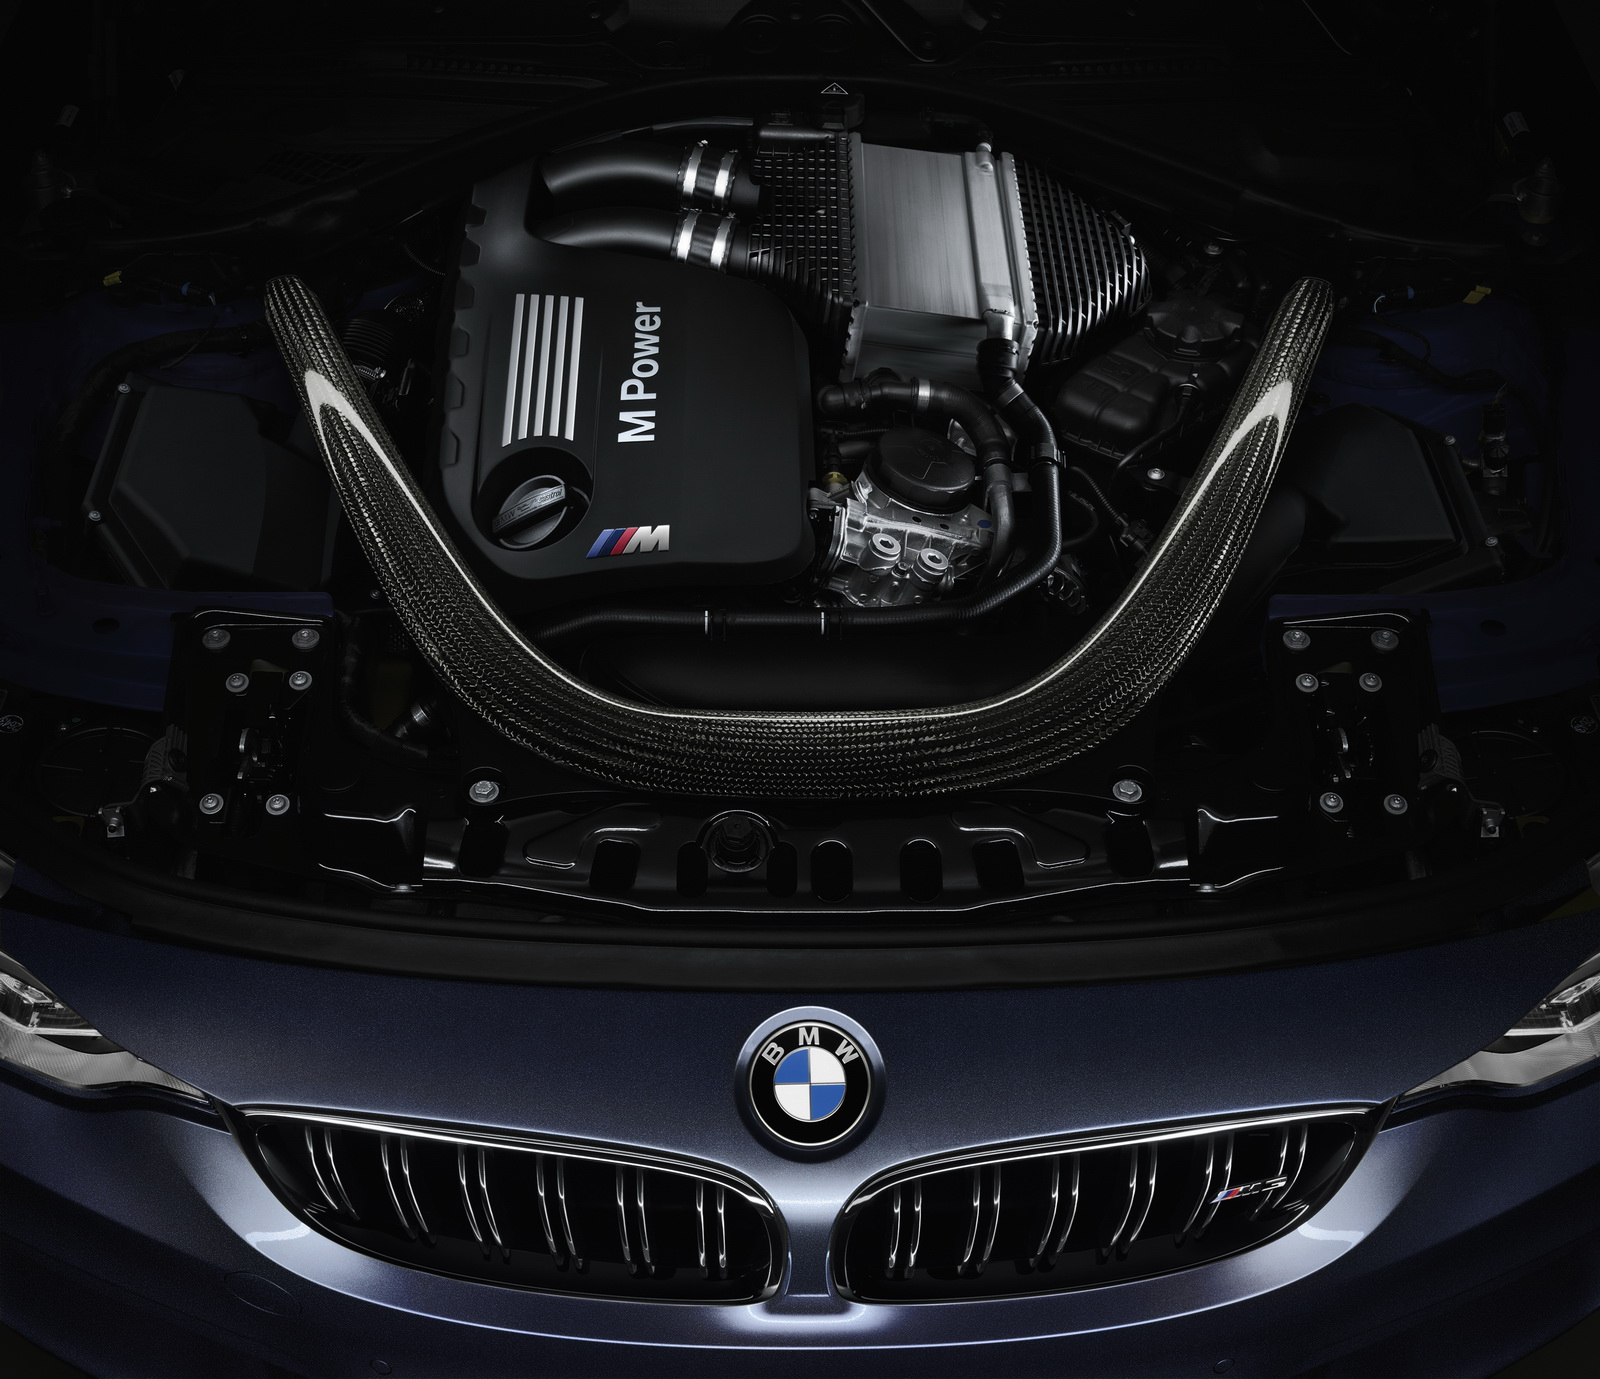 Bmw Years: BMW Celebrates 30th Anniversary With Limited 444HP M3 '30